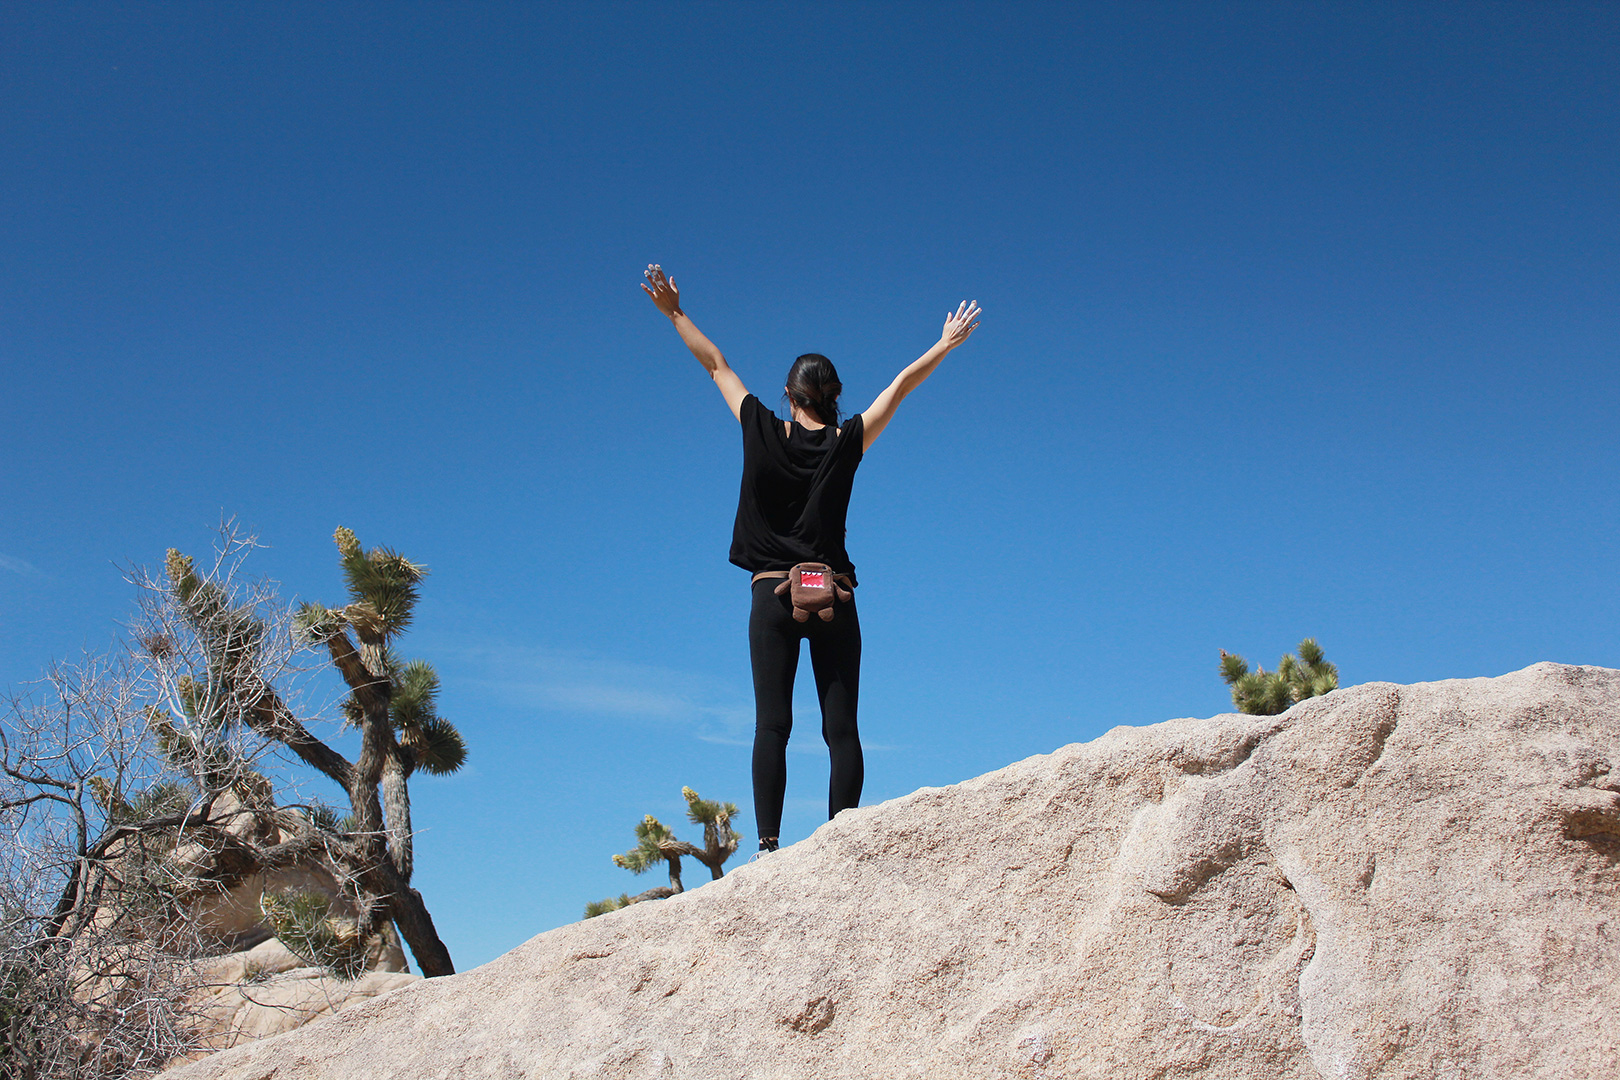 Celebrating after finally finishing a traverse climb on the third try. Yay! Oh and hi to my Domo Chalk Bag!